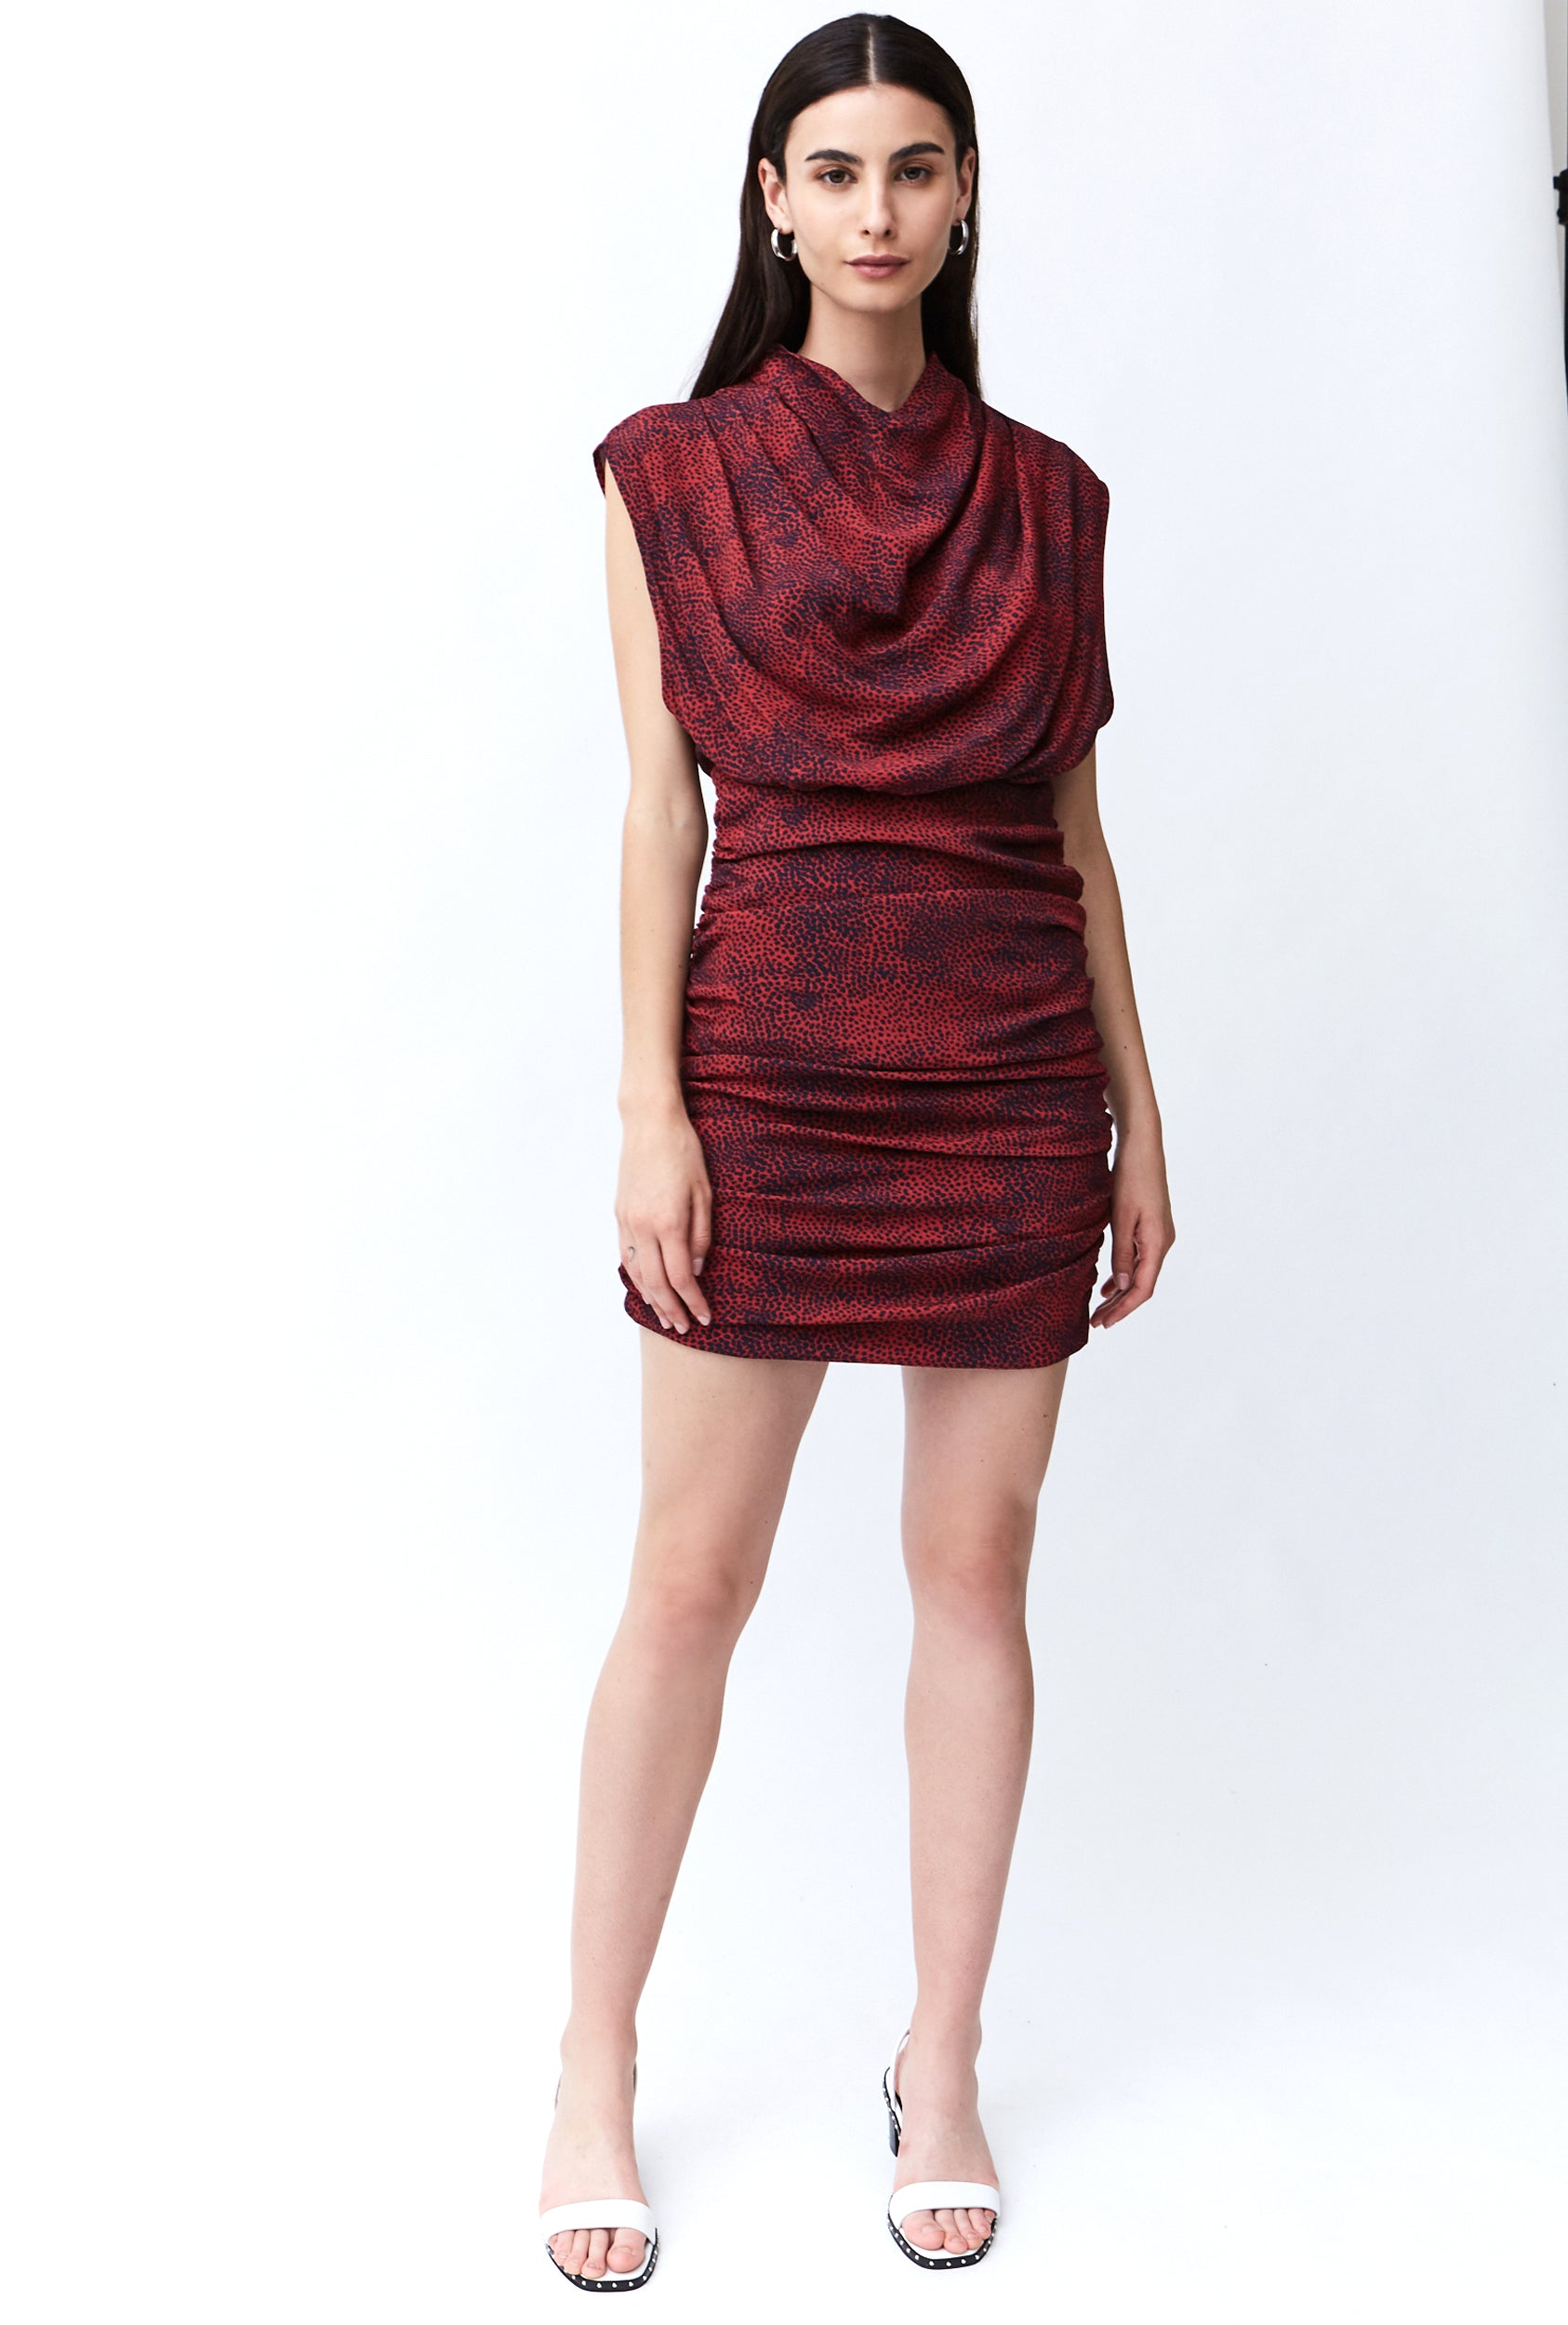 THE HUNTED HIGH NECK DRESS | CHERRY ANIMAL